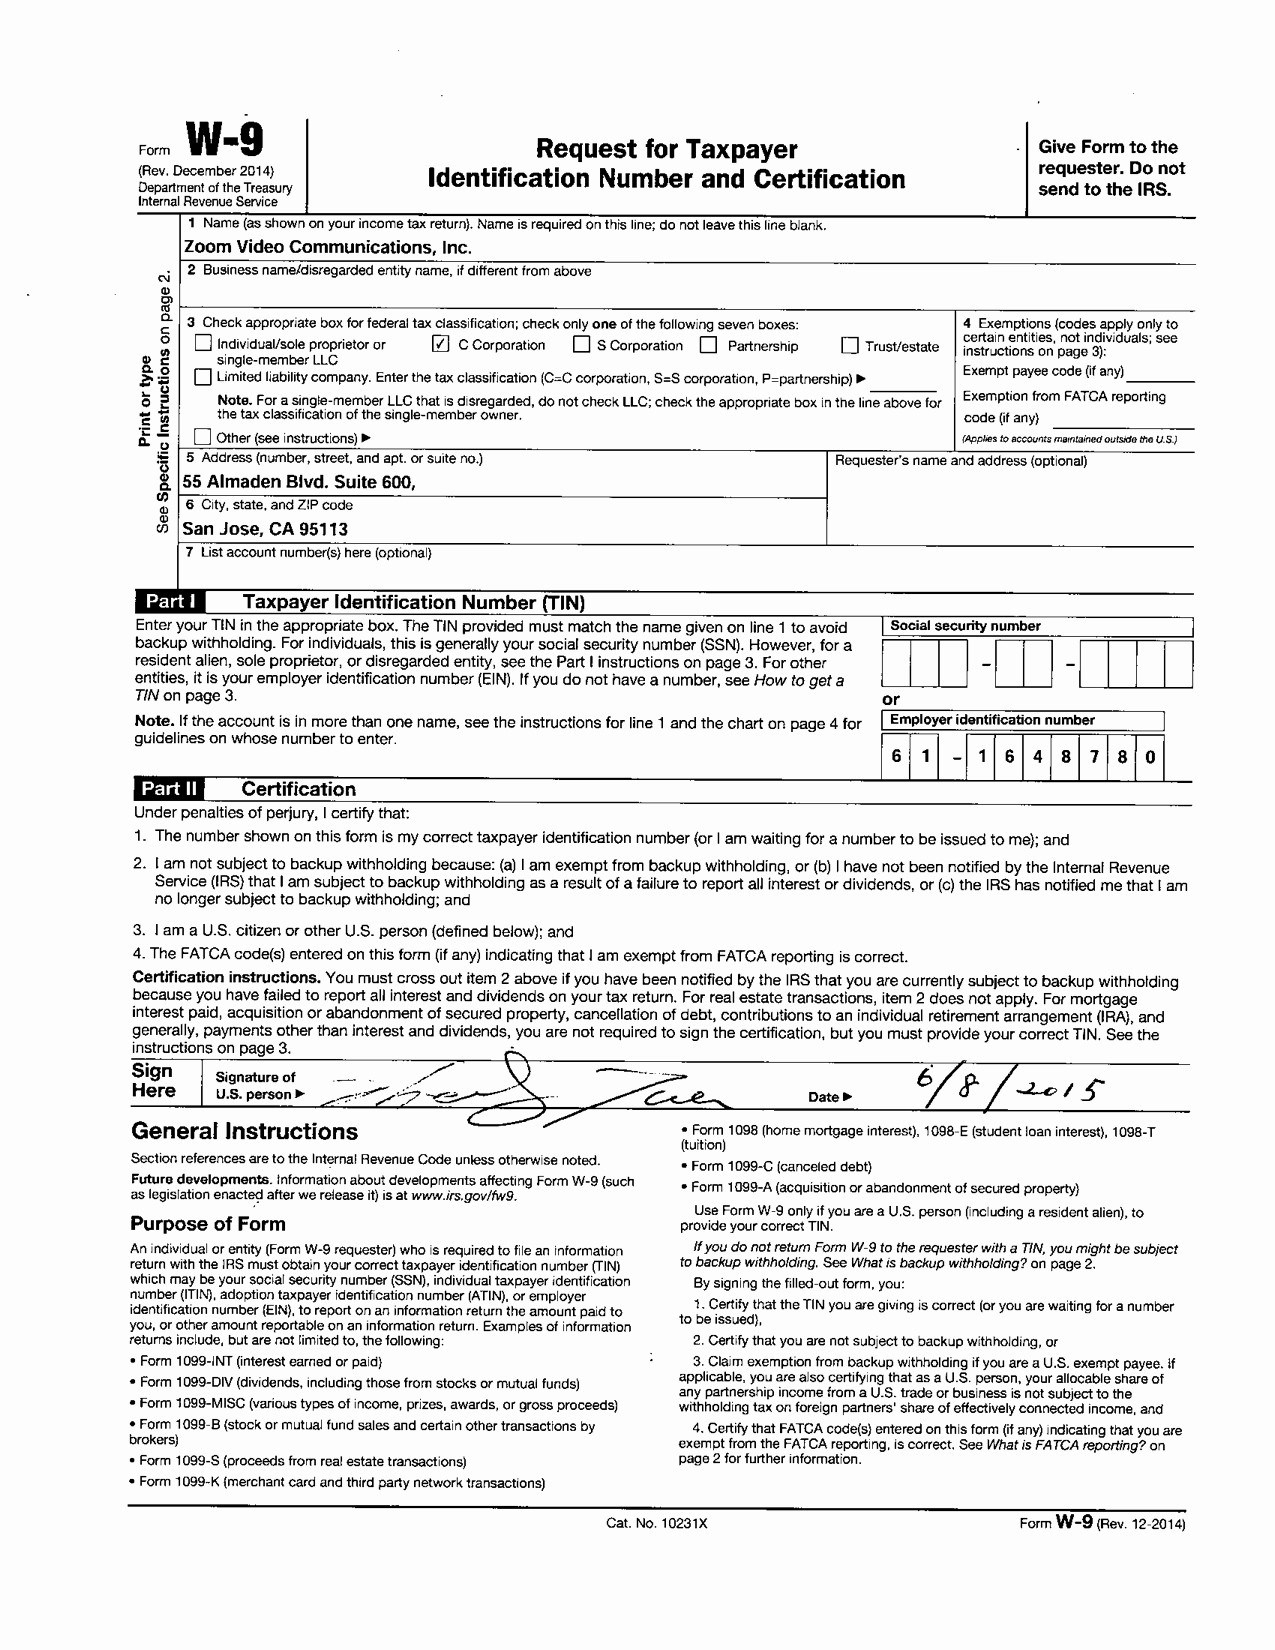 Printable 1096 Form 2015 – Jowo - Free Printable 1096 Form 2015